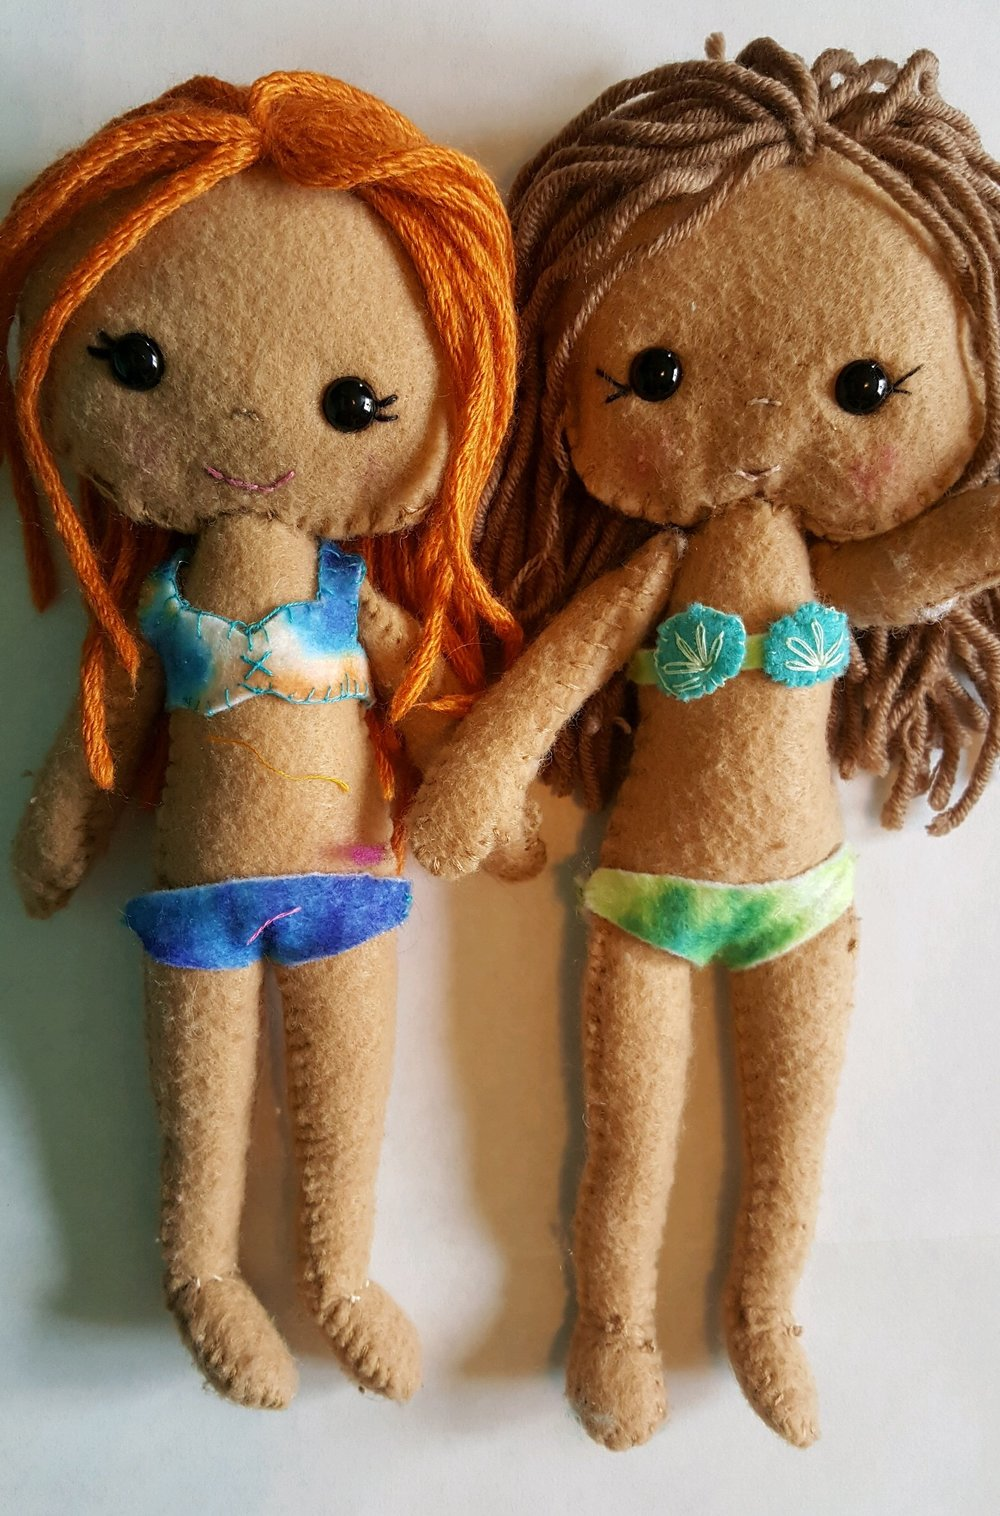 Redhead girl, handmade by Gabs                           Brown haired girl, handmade by Calista